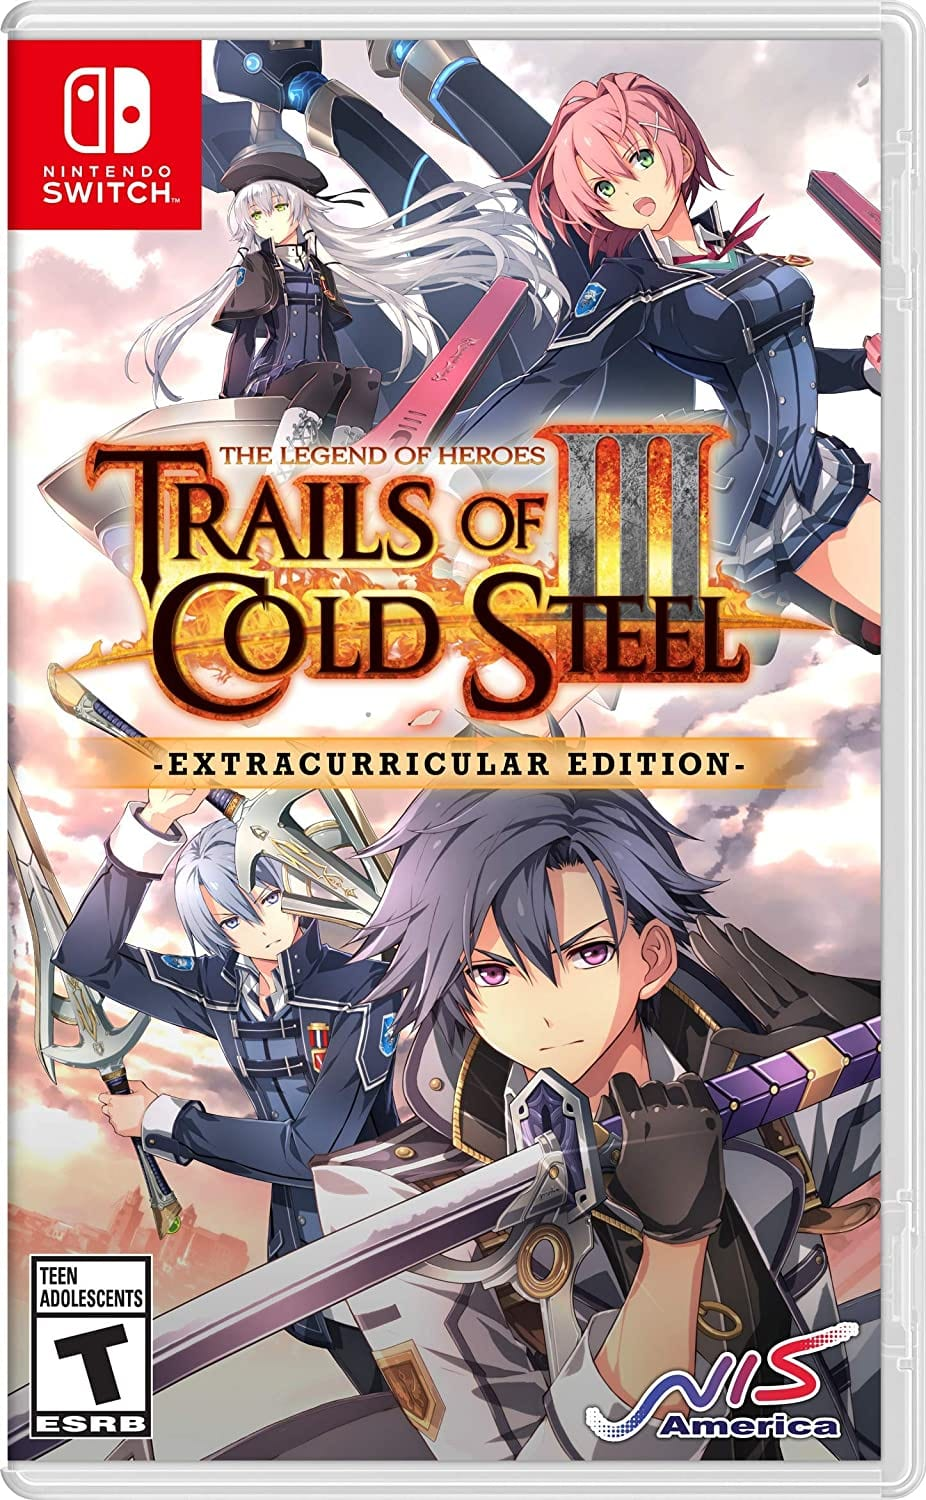 The Legend of Heroes: Trails of Cold Steel III: Extracurricular Edition (Nintendo Switch)